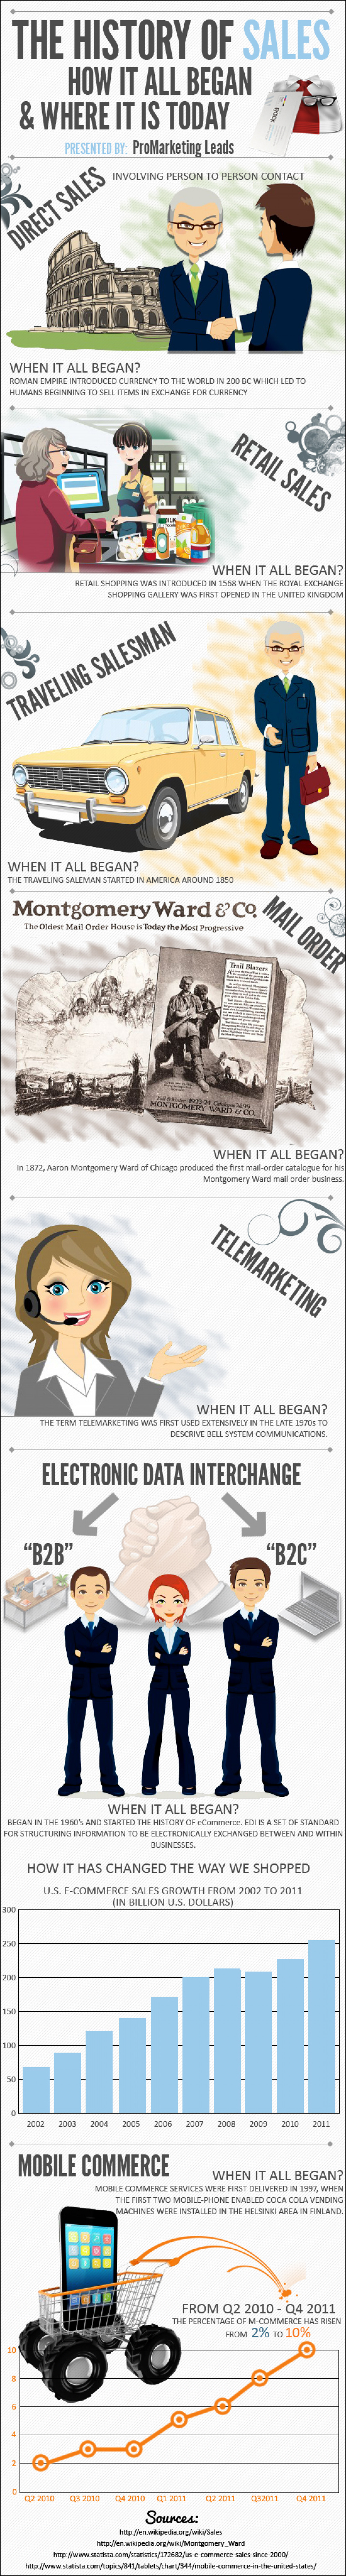 The History of Sales Infographic